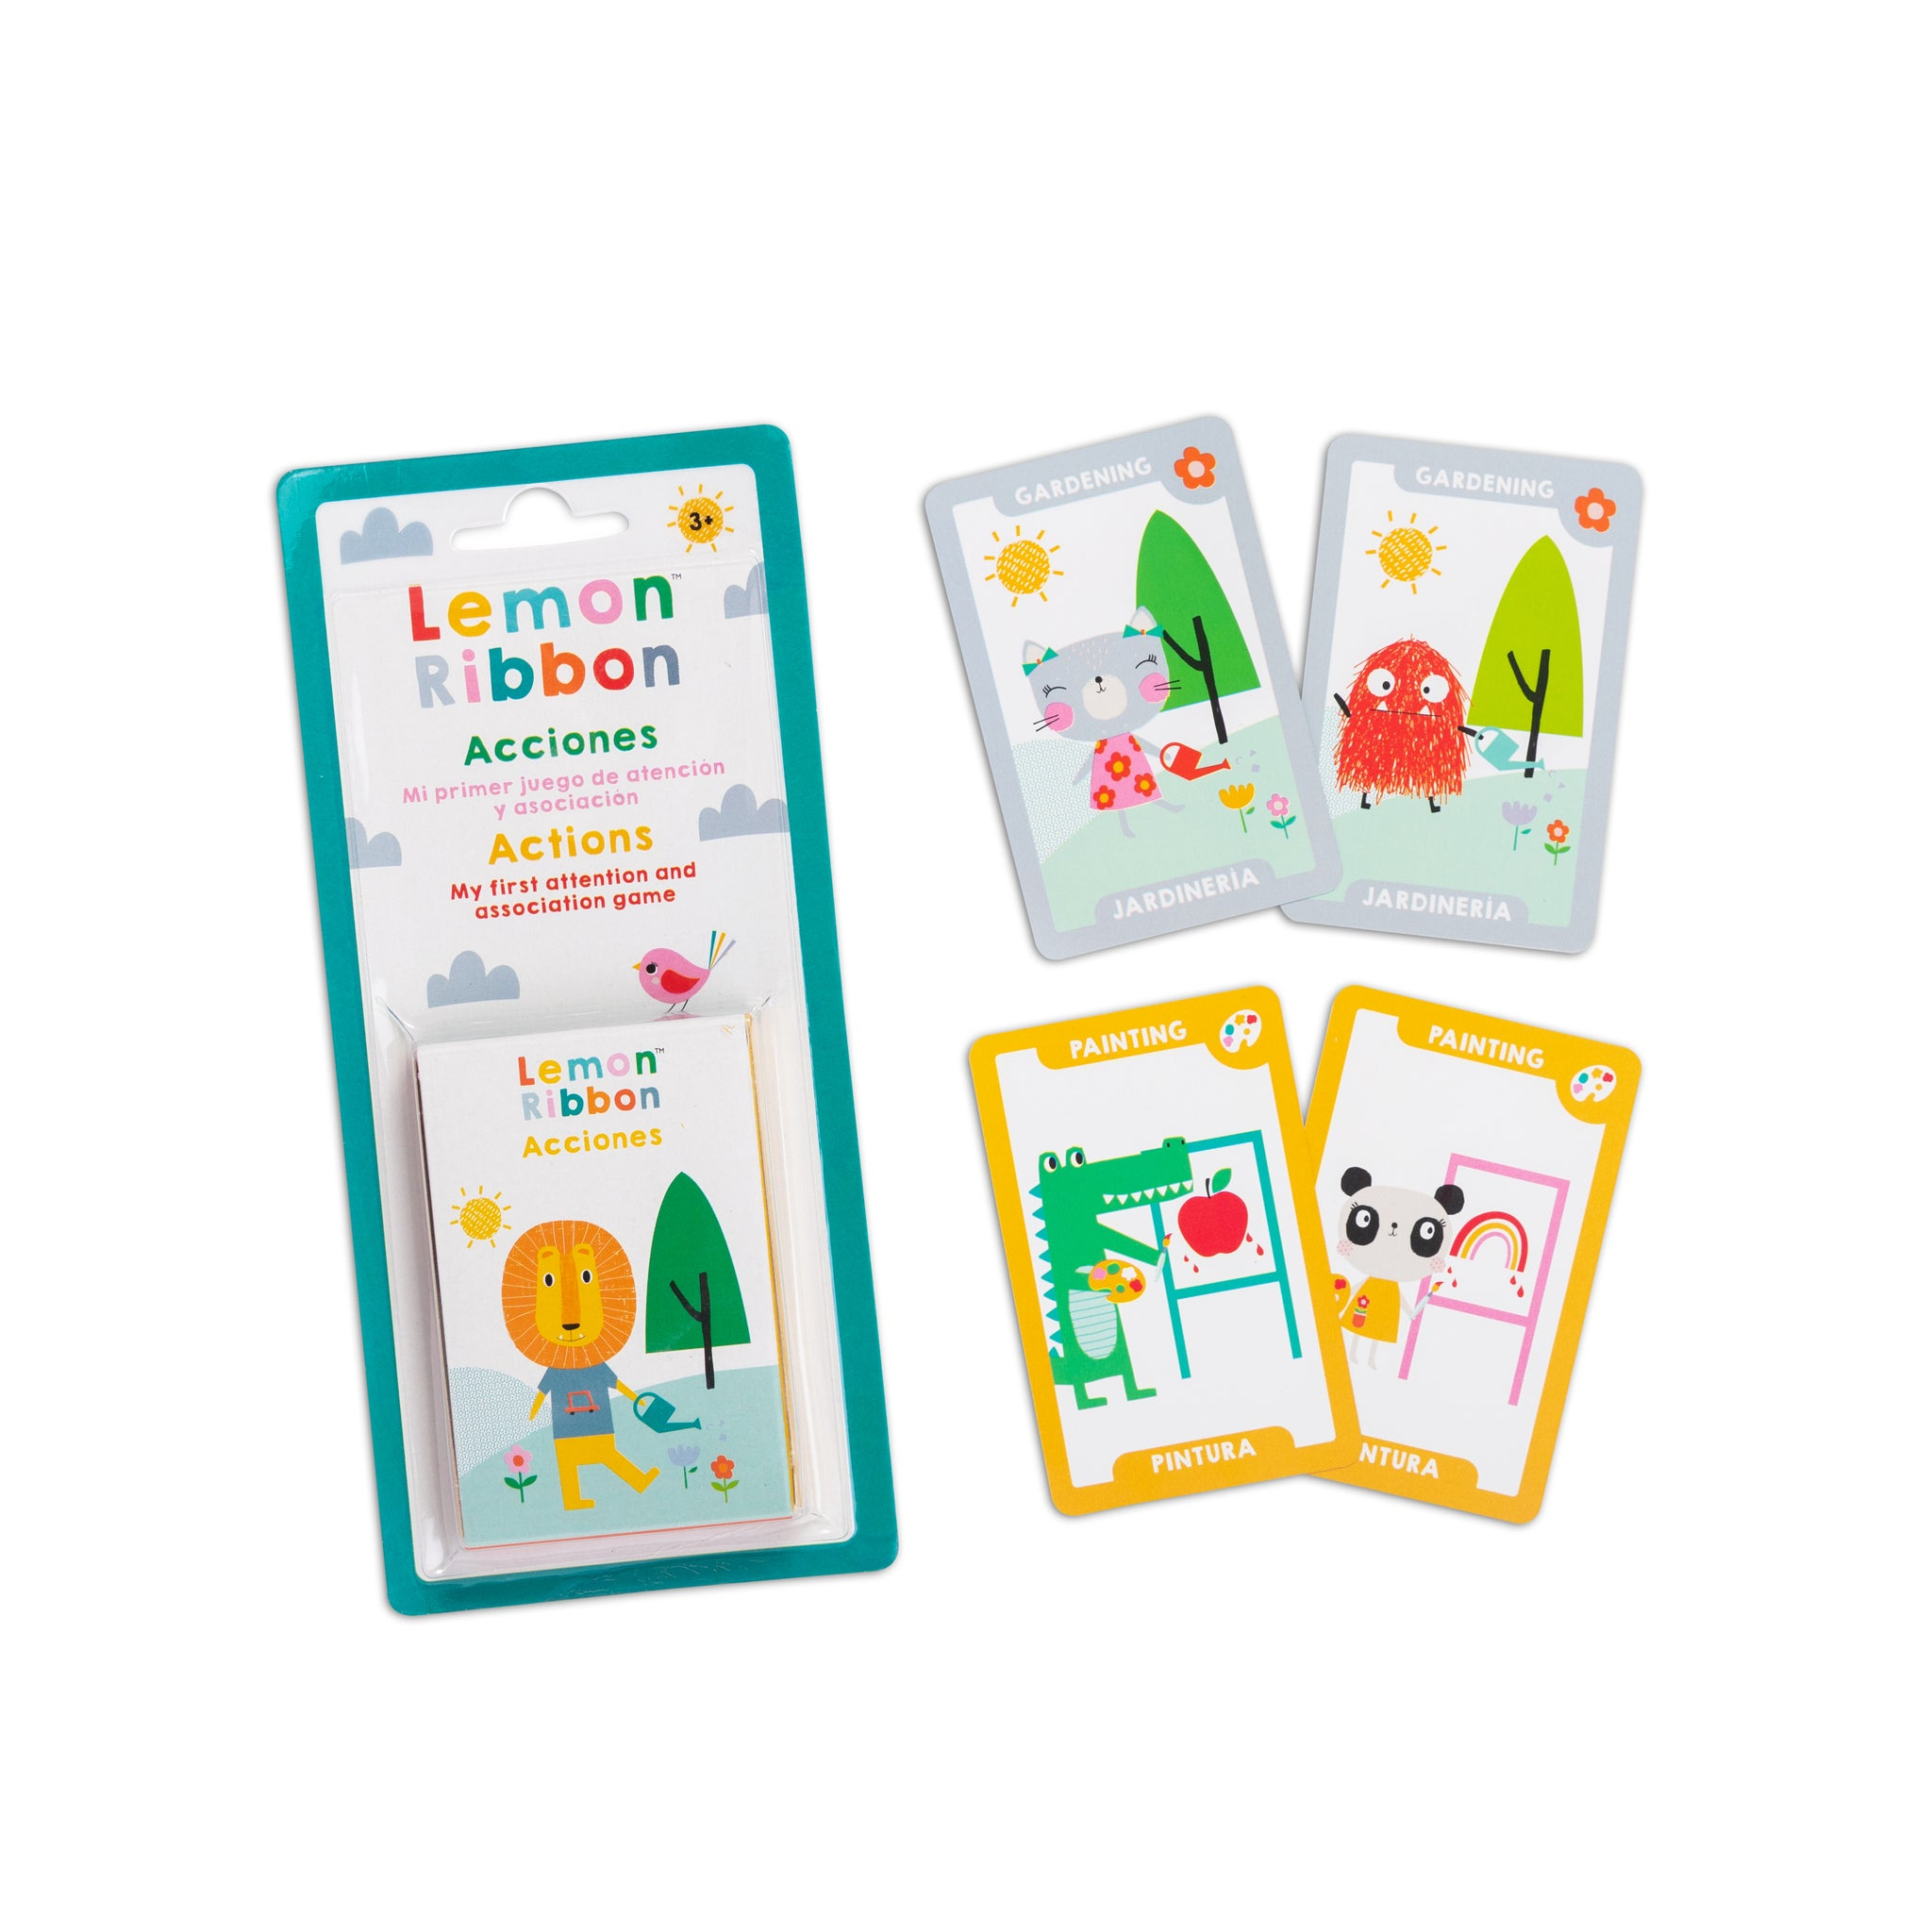 Buy Lemon Ribbon Action Playing Cards, Educational Toy Online at shop.lemonribbon.com